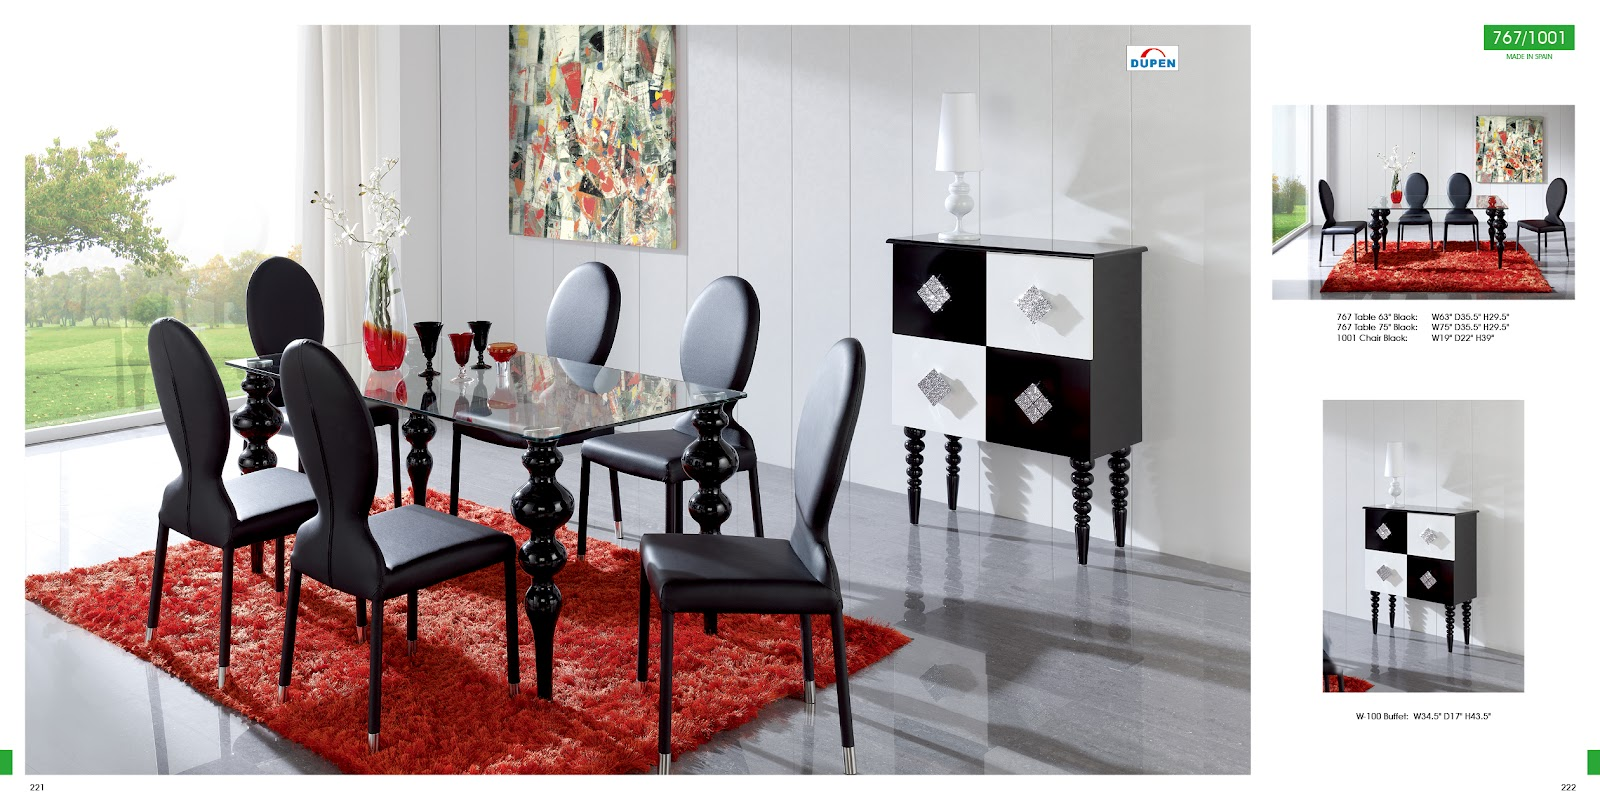 Dining Room Furniture Modern Dining Sets 767 Table And 1001 Chairs